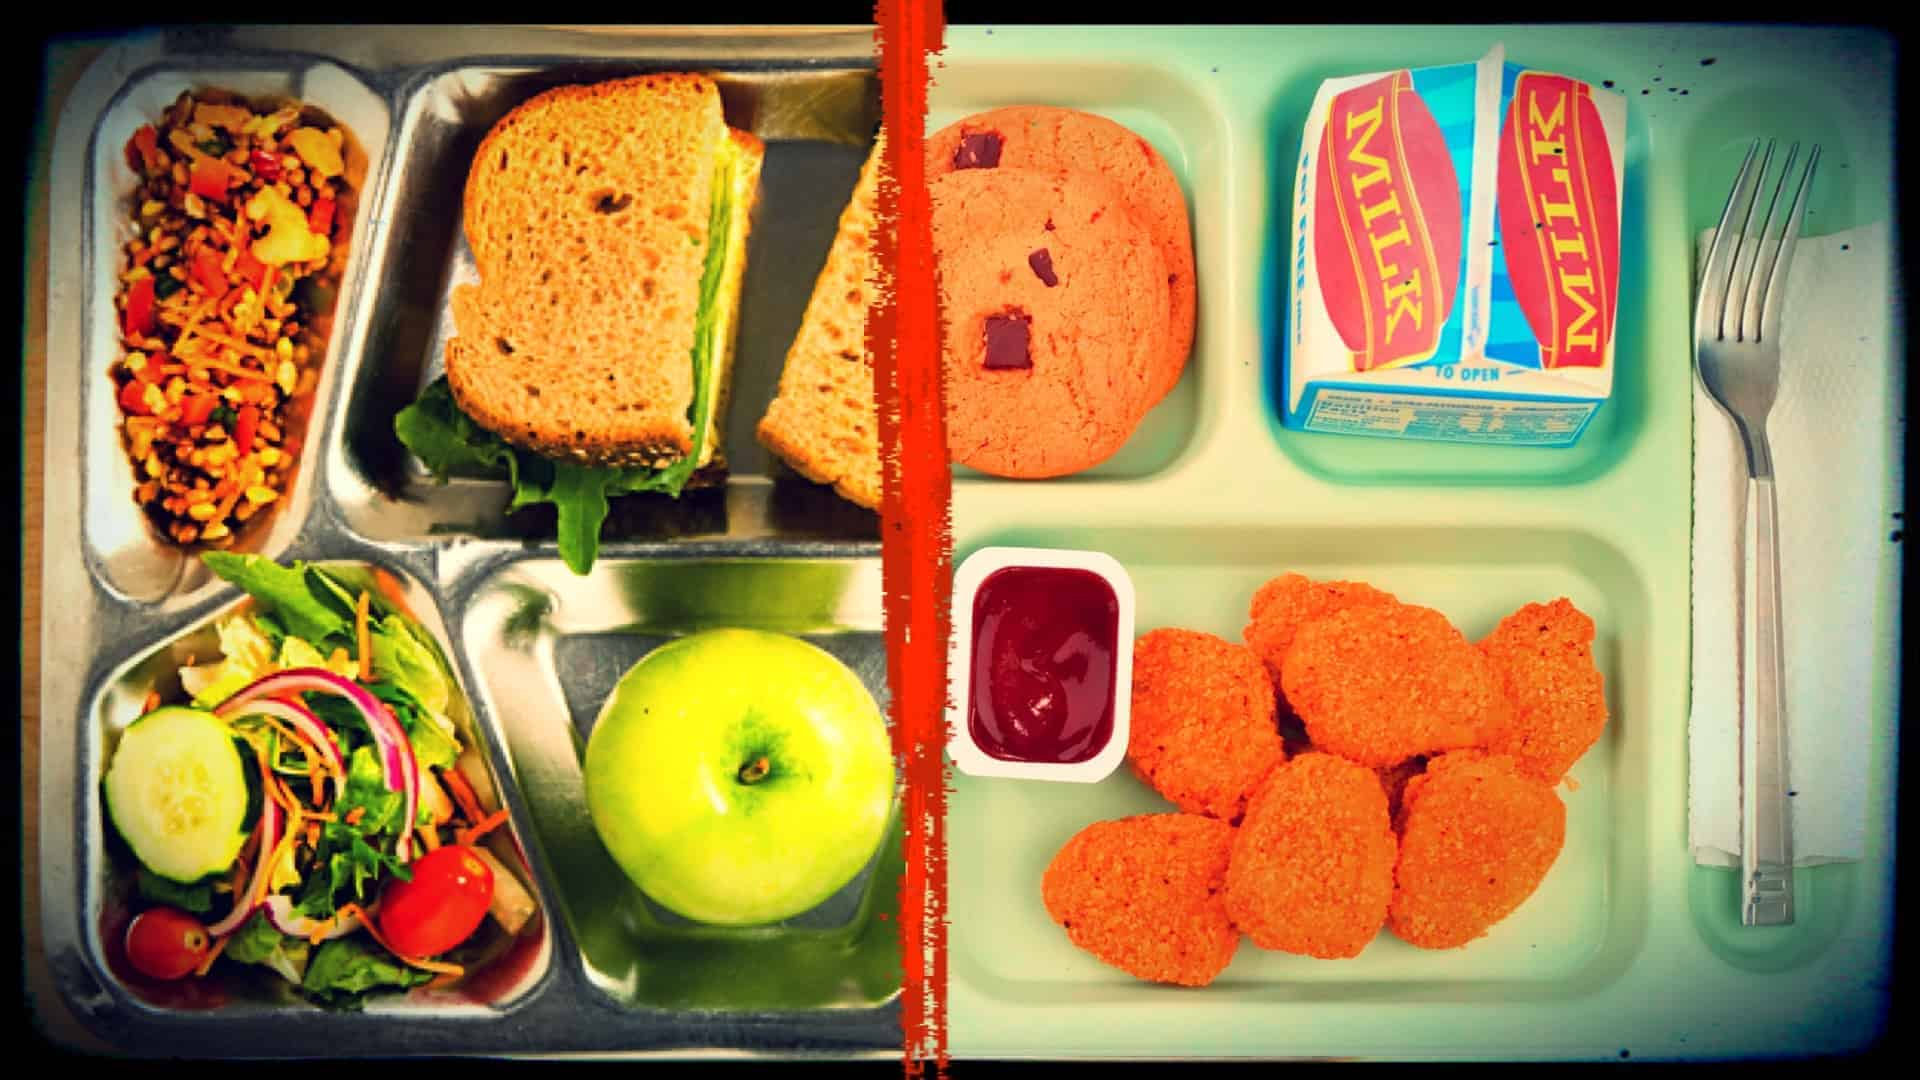 Two partial images are shown, separated by a vertical red line. The left-hand image shows a selection of vegan food upon a metal food tray. There is an apple, a sandwich, a colorful salad and a selection of dried fruits and nuts. In the second image, a second food tray is shown. It contains a carton of milk, seven chicken nuggets with dipping sauce, a cookie and a fork.